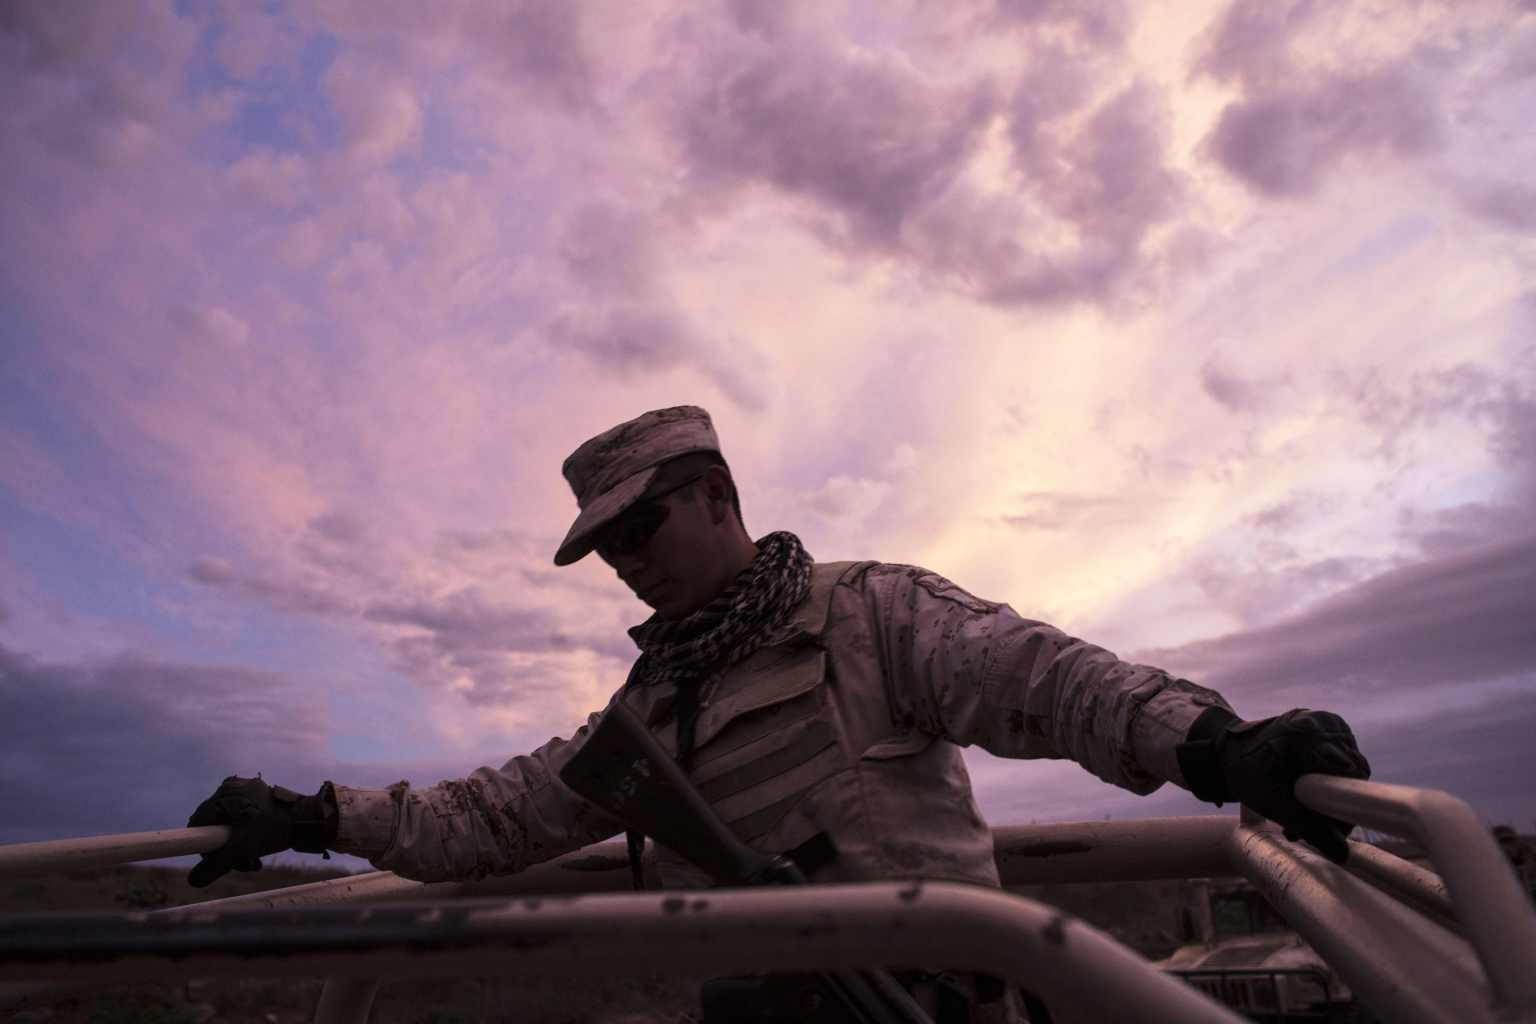 TOPSHOT - The sun sets as a Mexican soldier rides his vehicle after destroying illegal marijuana plantations at El Ajusco, near Ensenada, Baja California state, on March 22, 2018, northwestern Mexico. The Mexican Army located four marihuana plantations on March 21 with a total surface of 5,600 square meters. / AFP PHOTO / GUILLERMO ARIAS        (Photo credit should read GUILLERMO ARIAS/AFP/Getty Images)